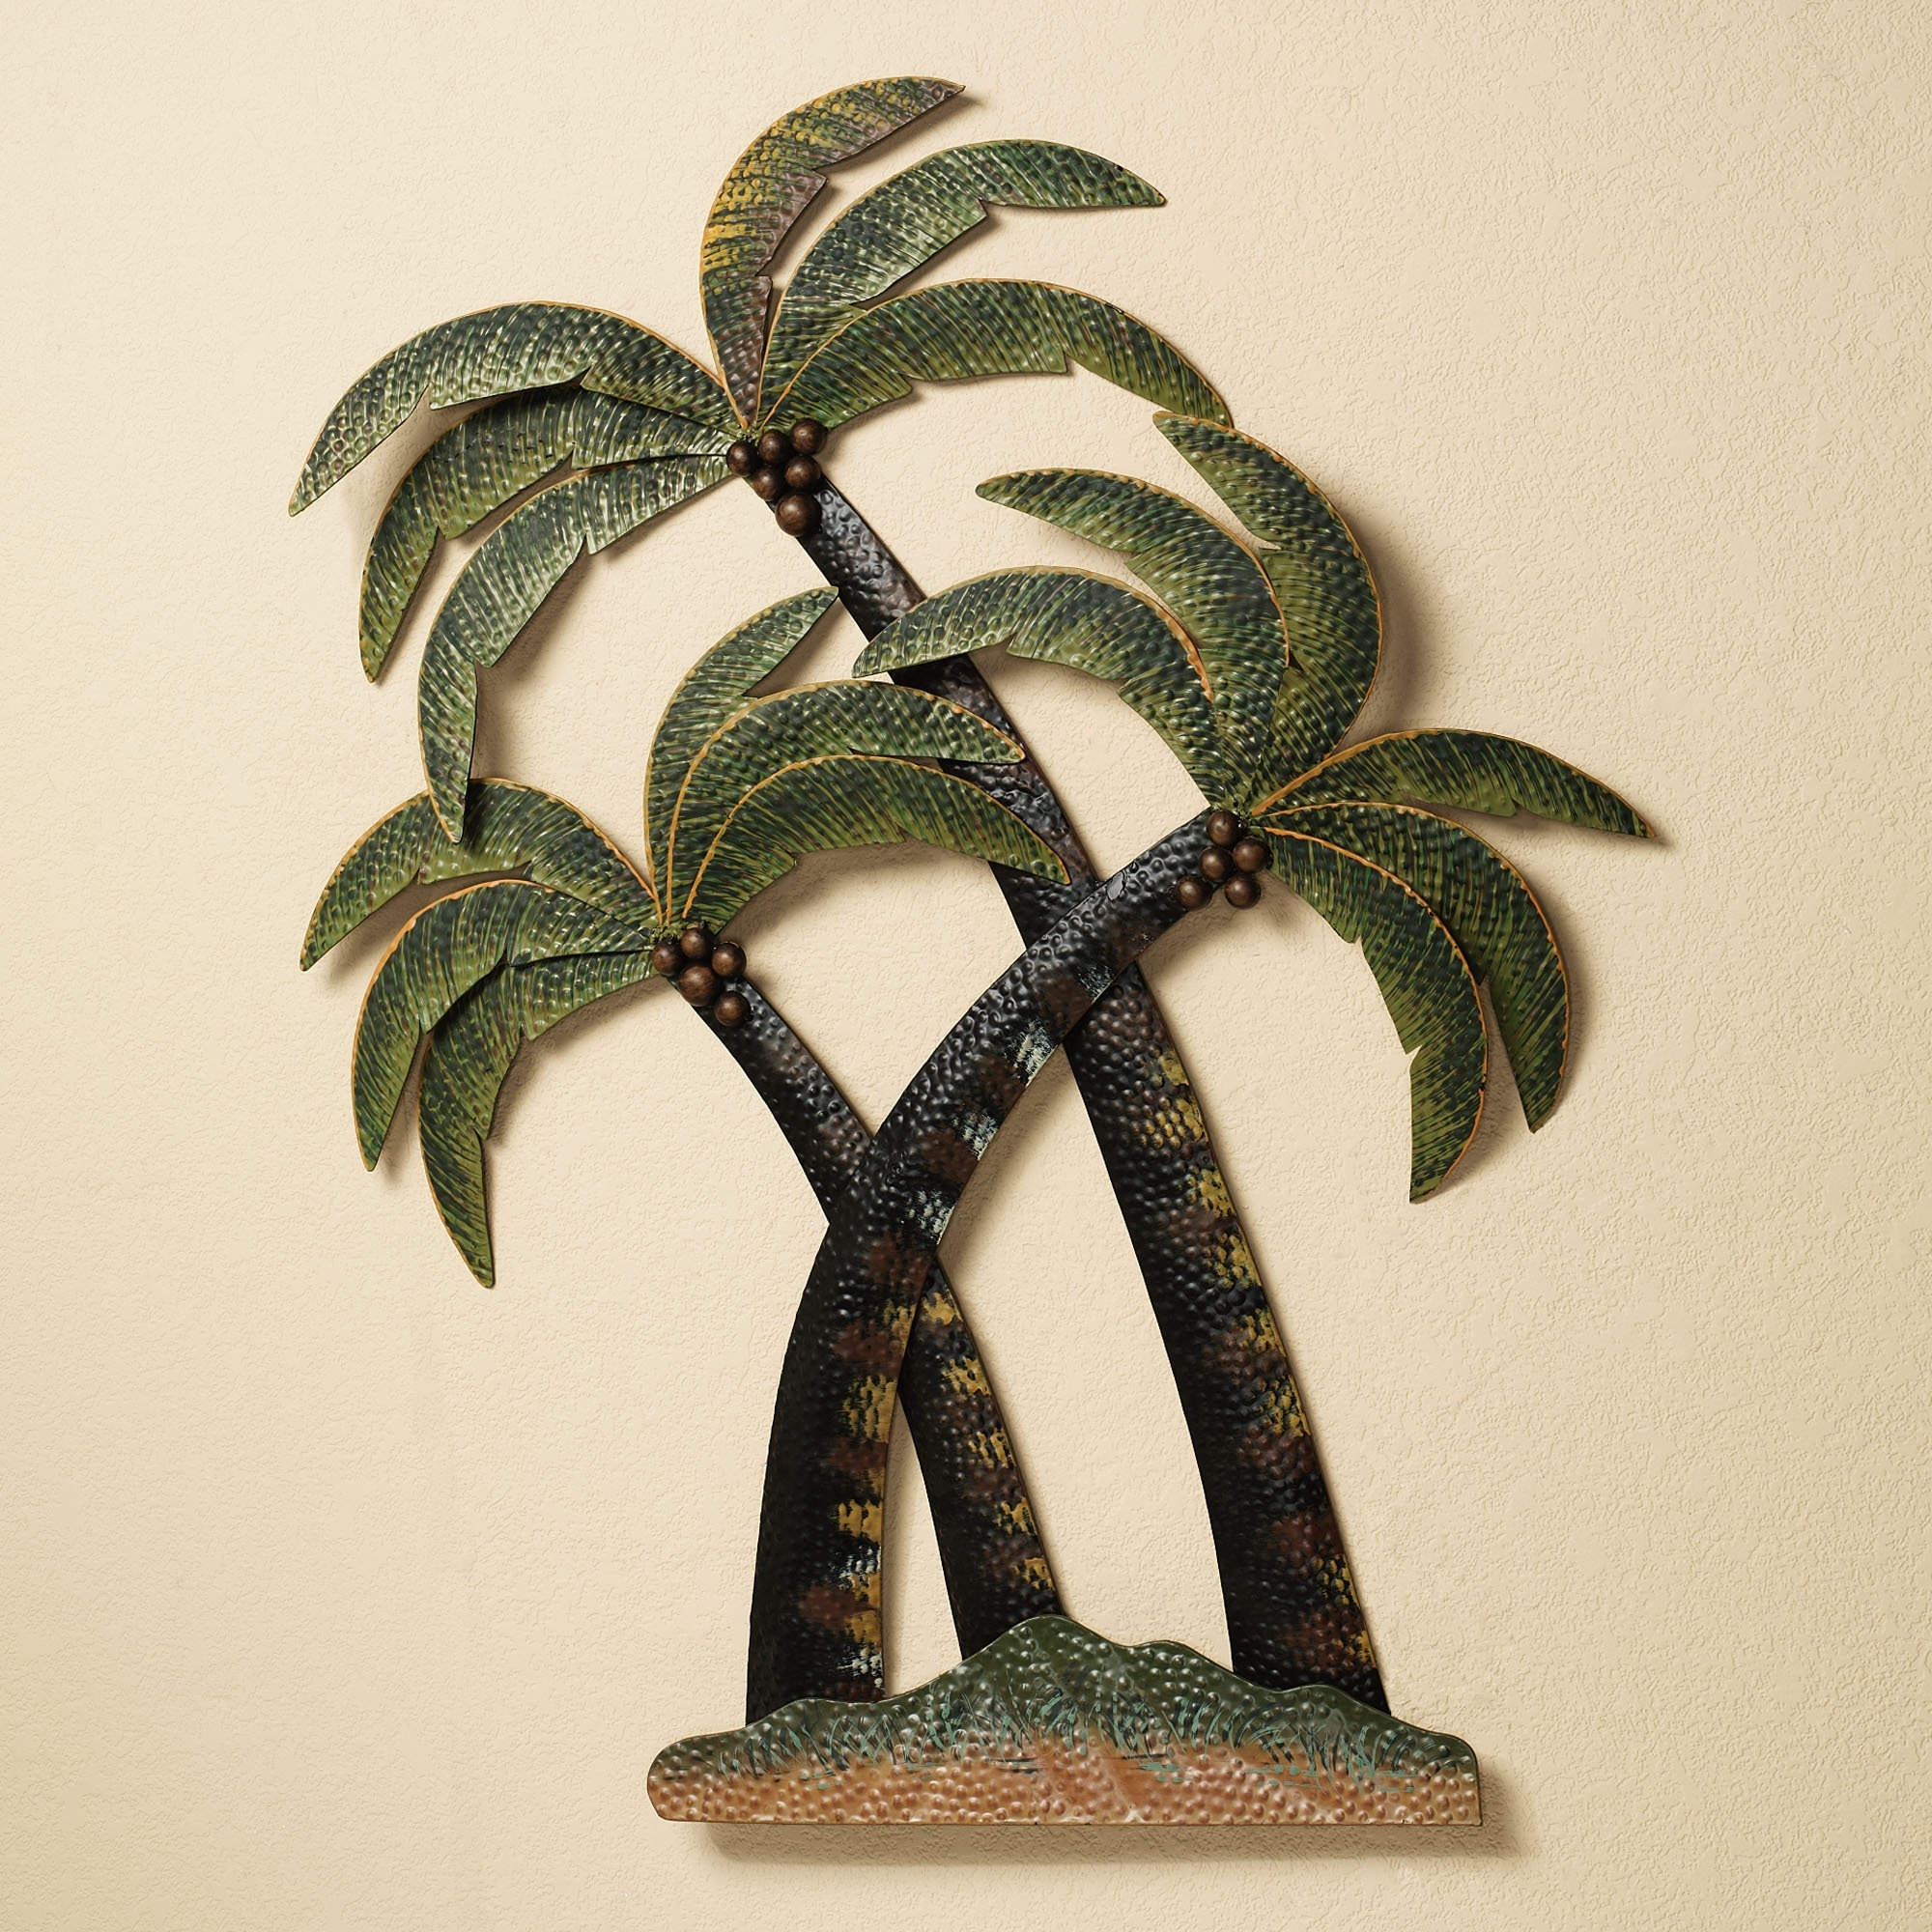 Preferred Stainless Steel Outdoor Wall Art Inside Wall Art Design Ideas: Sculpture Metal Palm Tree Wall Art Outdoor (View 5 of 15)